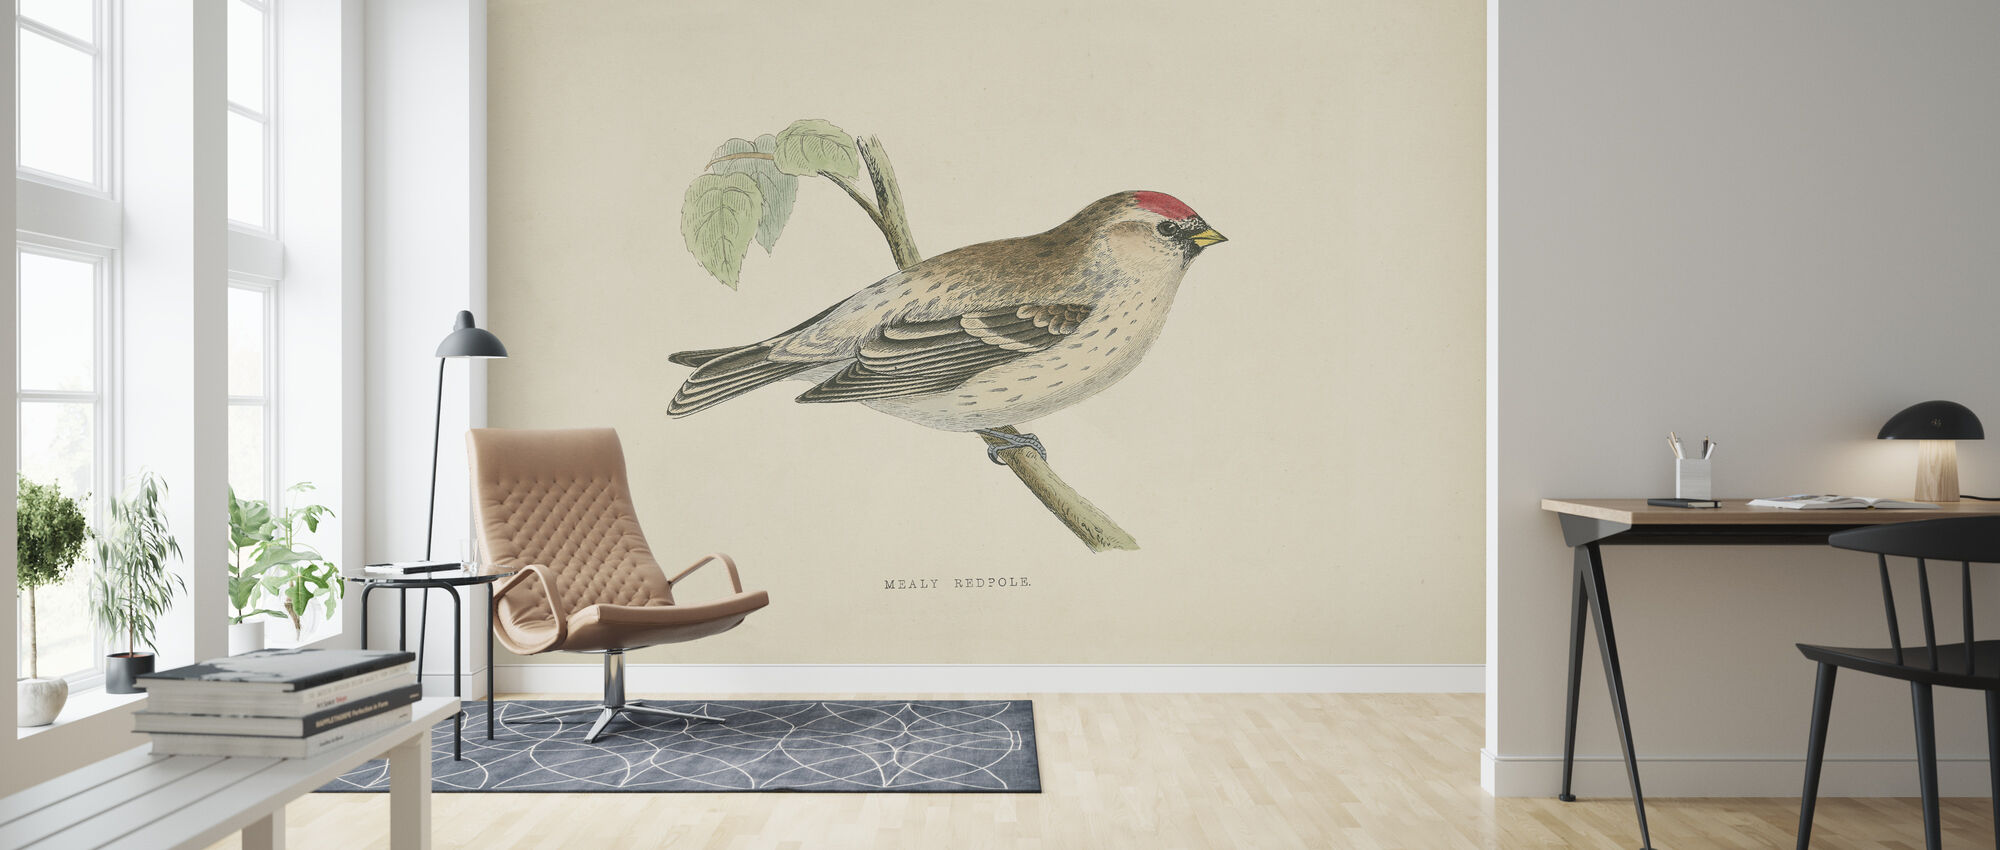 Mealy Redpole Print - Wallpaper - Living Room